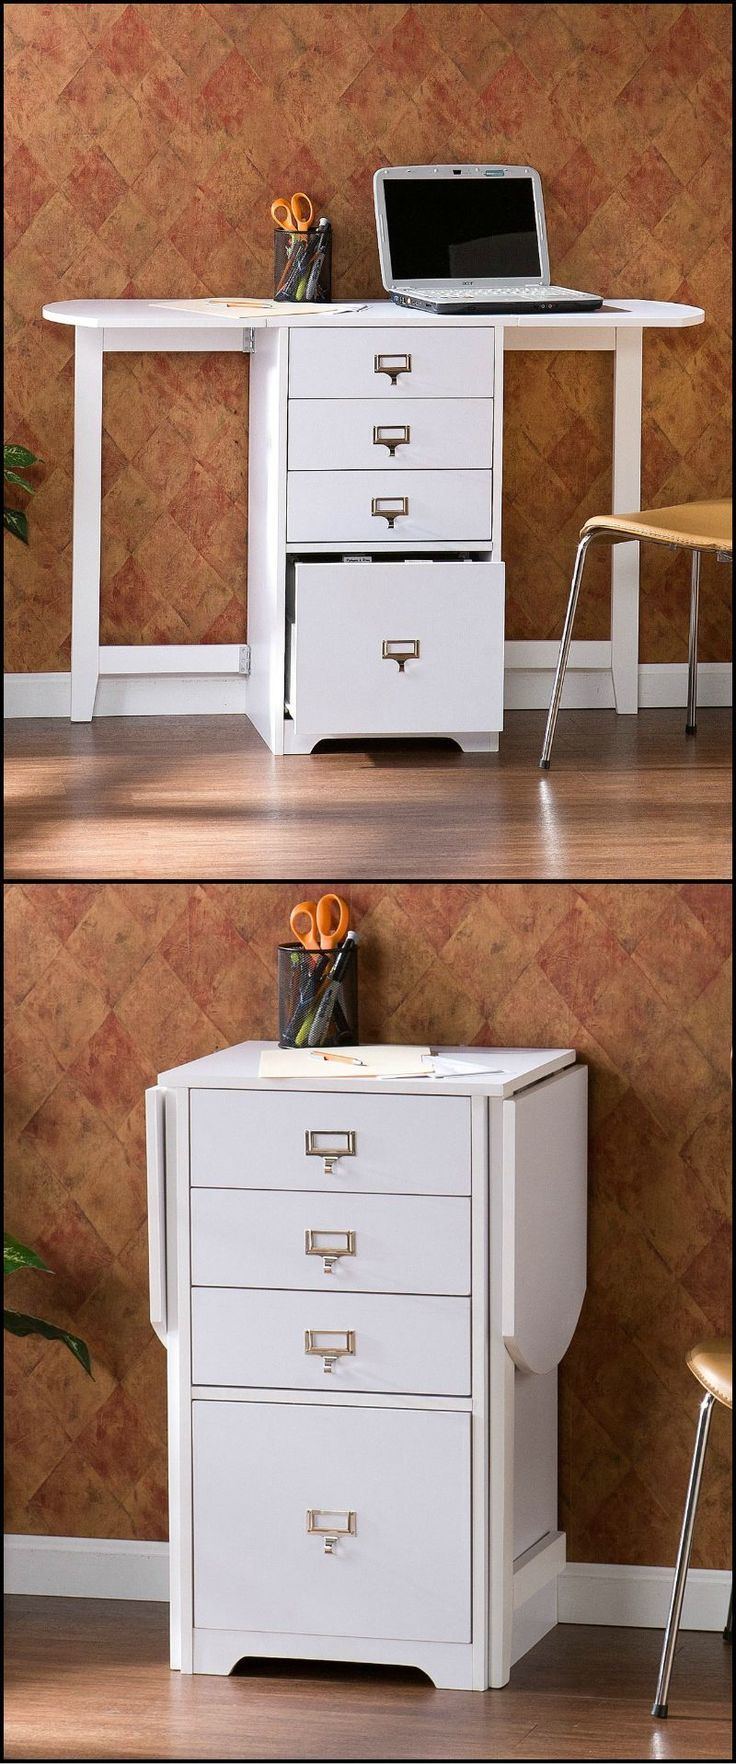 Space Saving Cabinet 25 Best Ideas About Space Saving Desk On Pinterest Space Saving